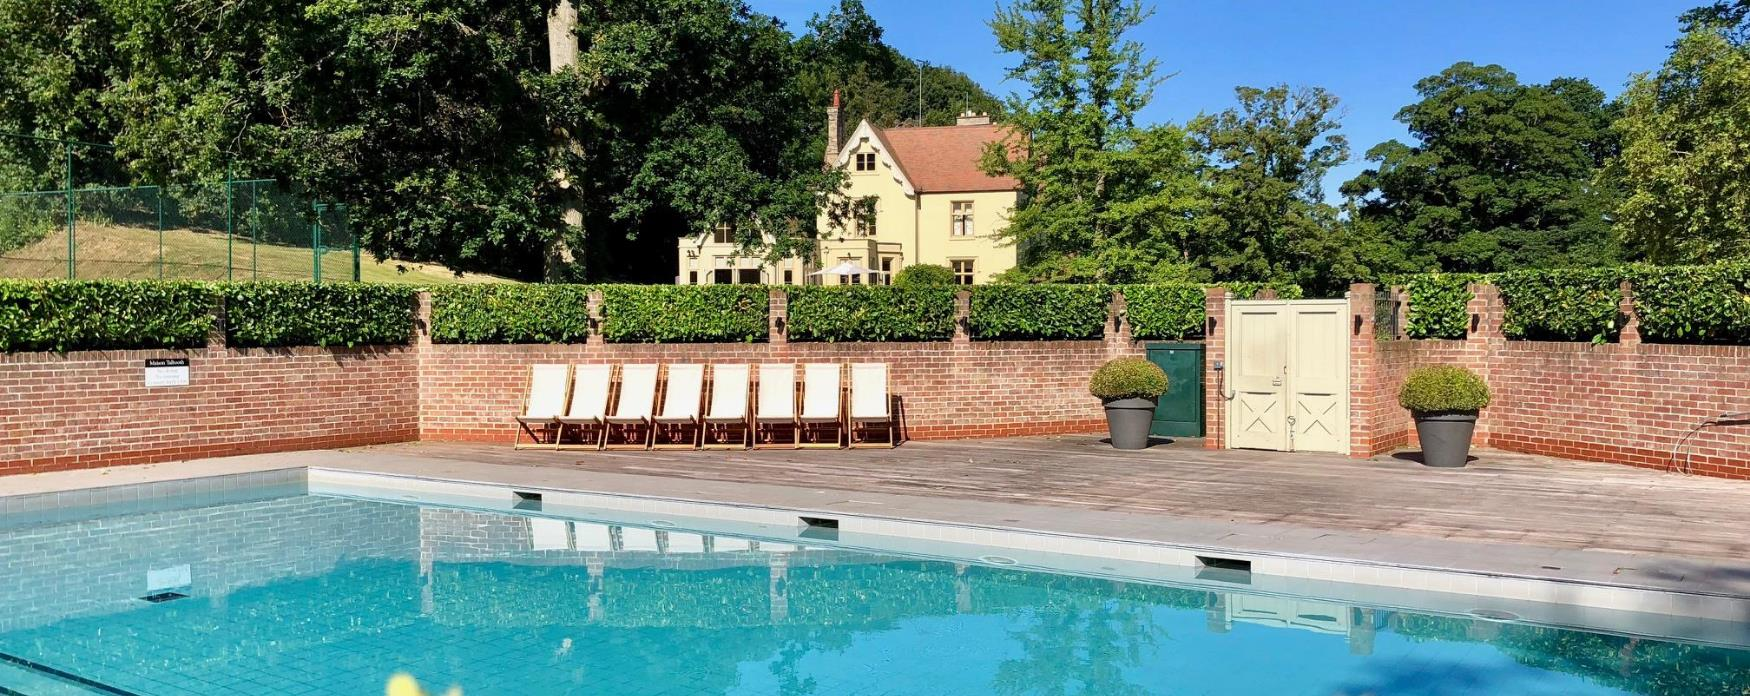 The swimming pool at Maison Talbooth Hotel